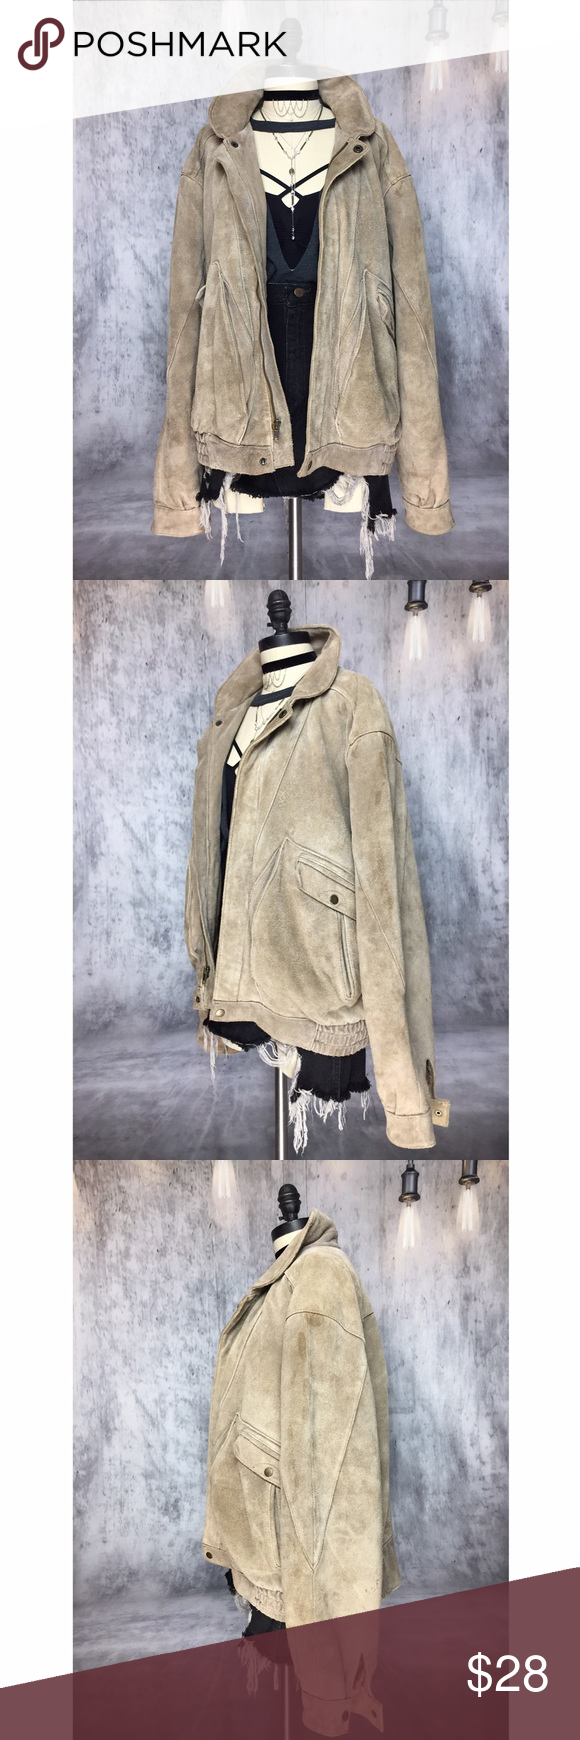 true vintage wilsons leather and suede jacket Suede